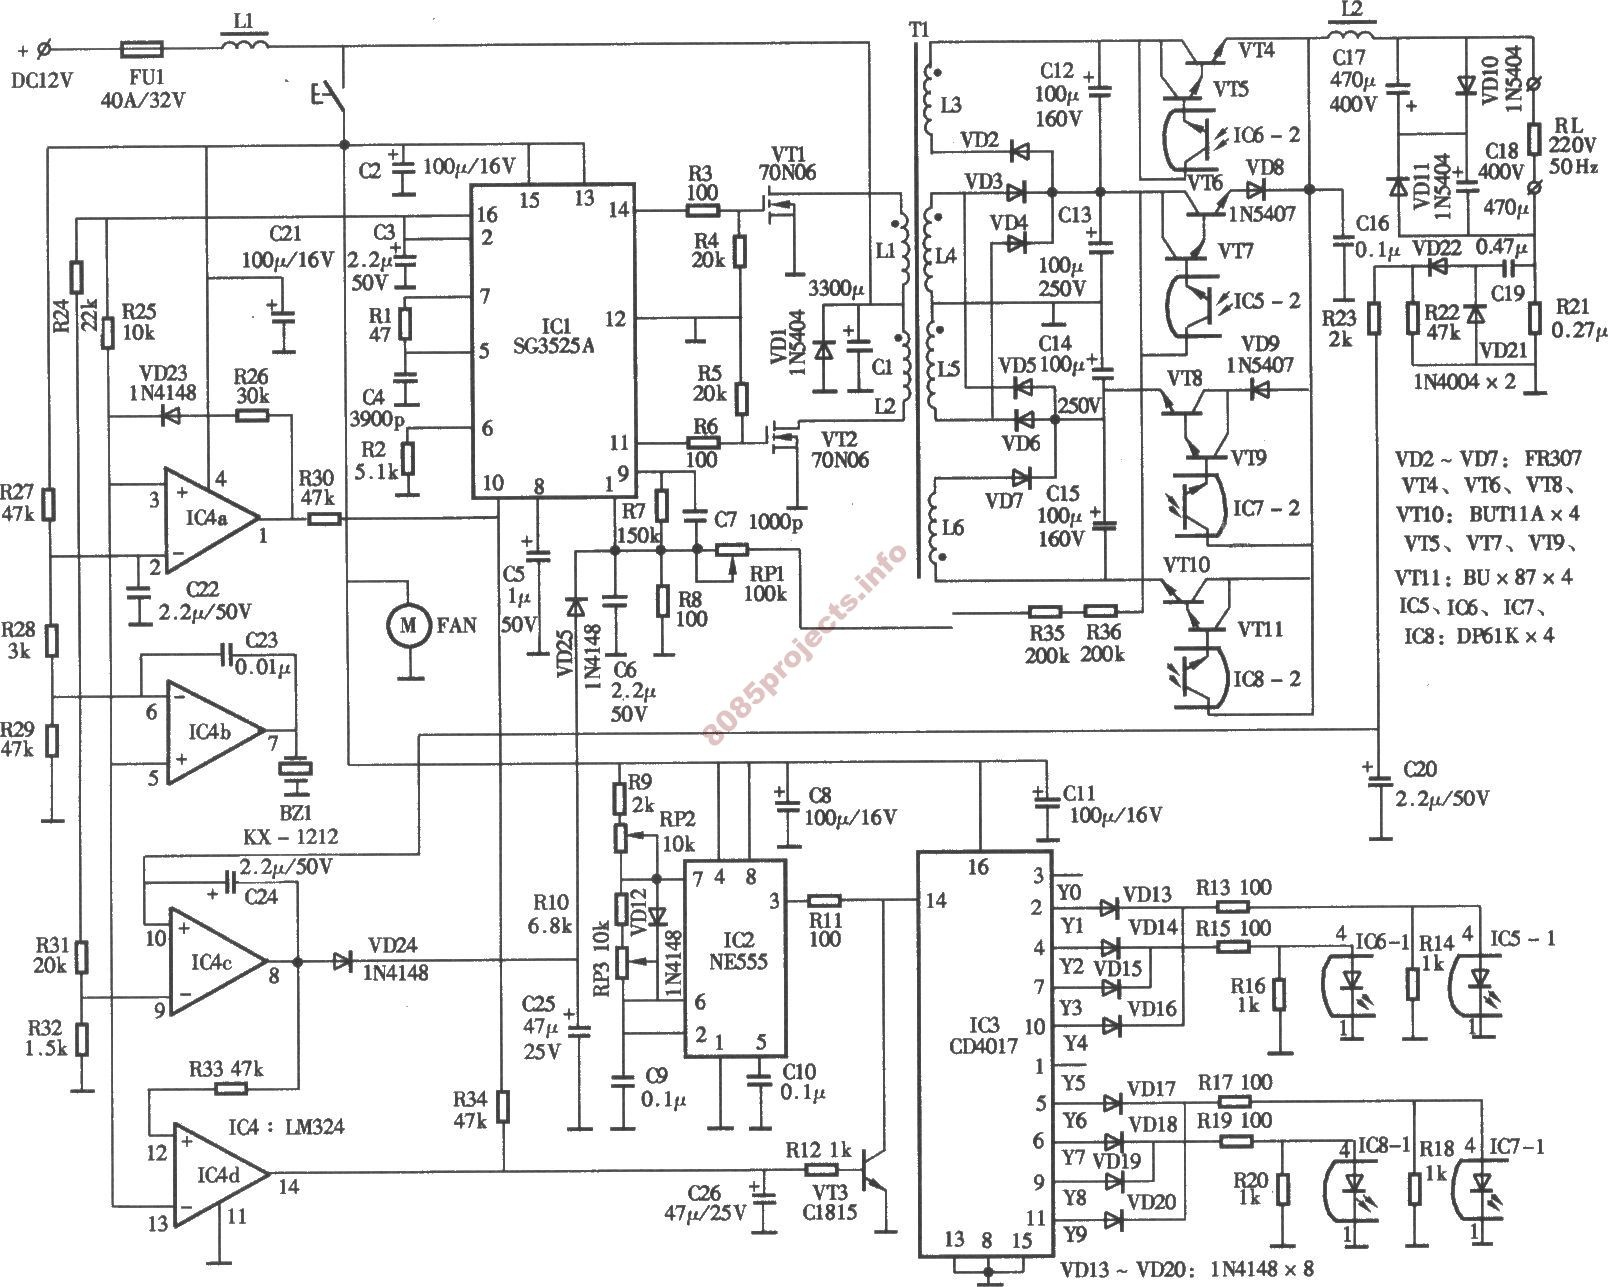 Electric Circuit Drawing At Free For Personal Use Electronic Circuits Electronics Analysis 1608x1287 Projects Blog Archive 300w Inverter